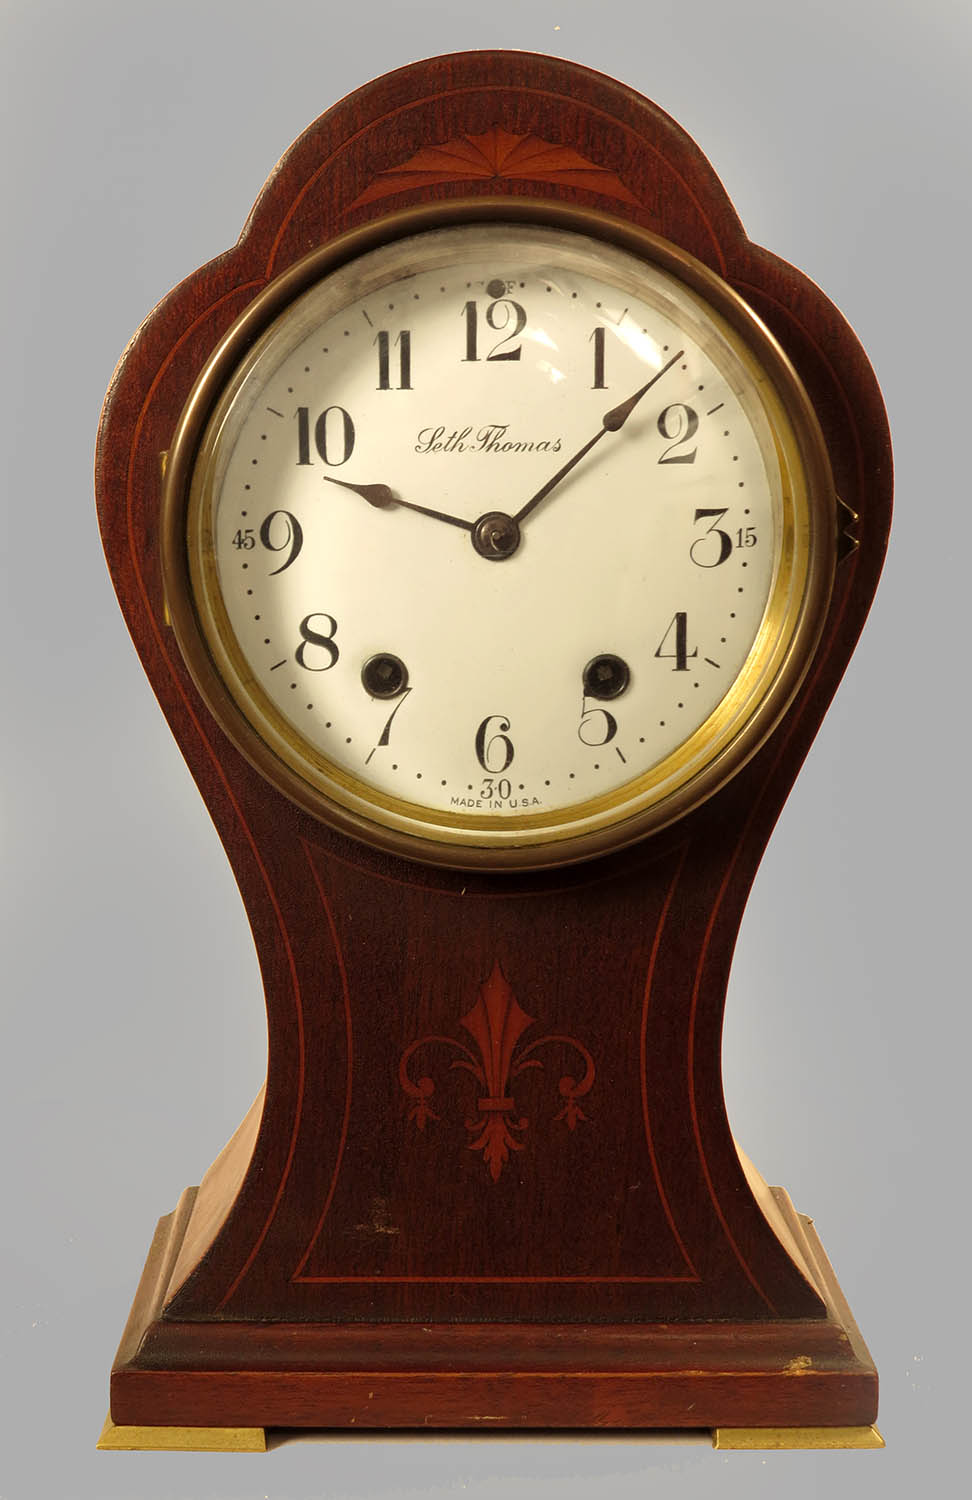 6025seth thomas florence balloon clock-1500.jpg